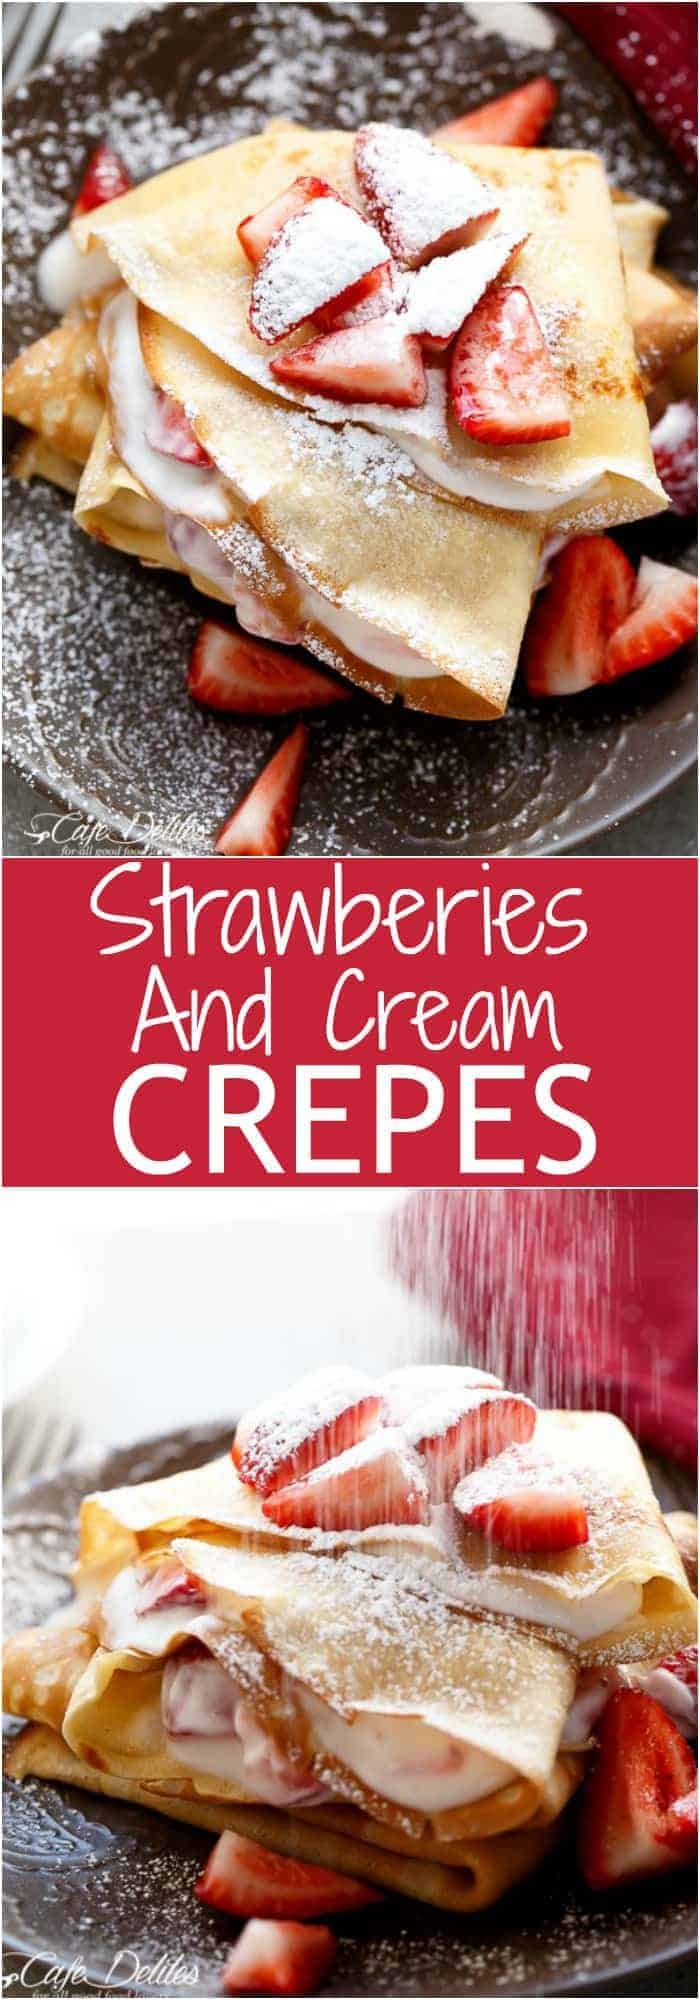 Strawberries and Cream Crepes Collage | https://cafedelites.com